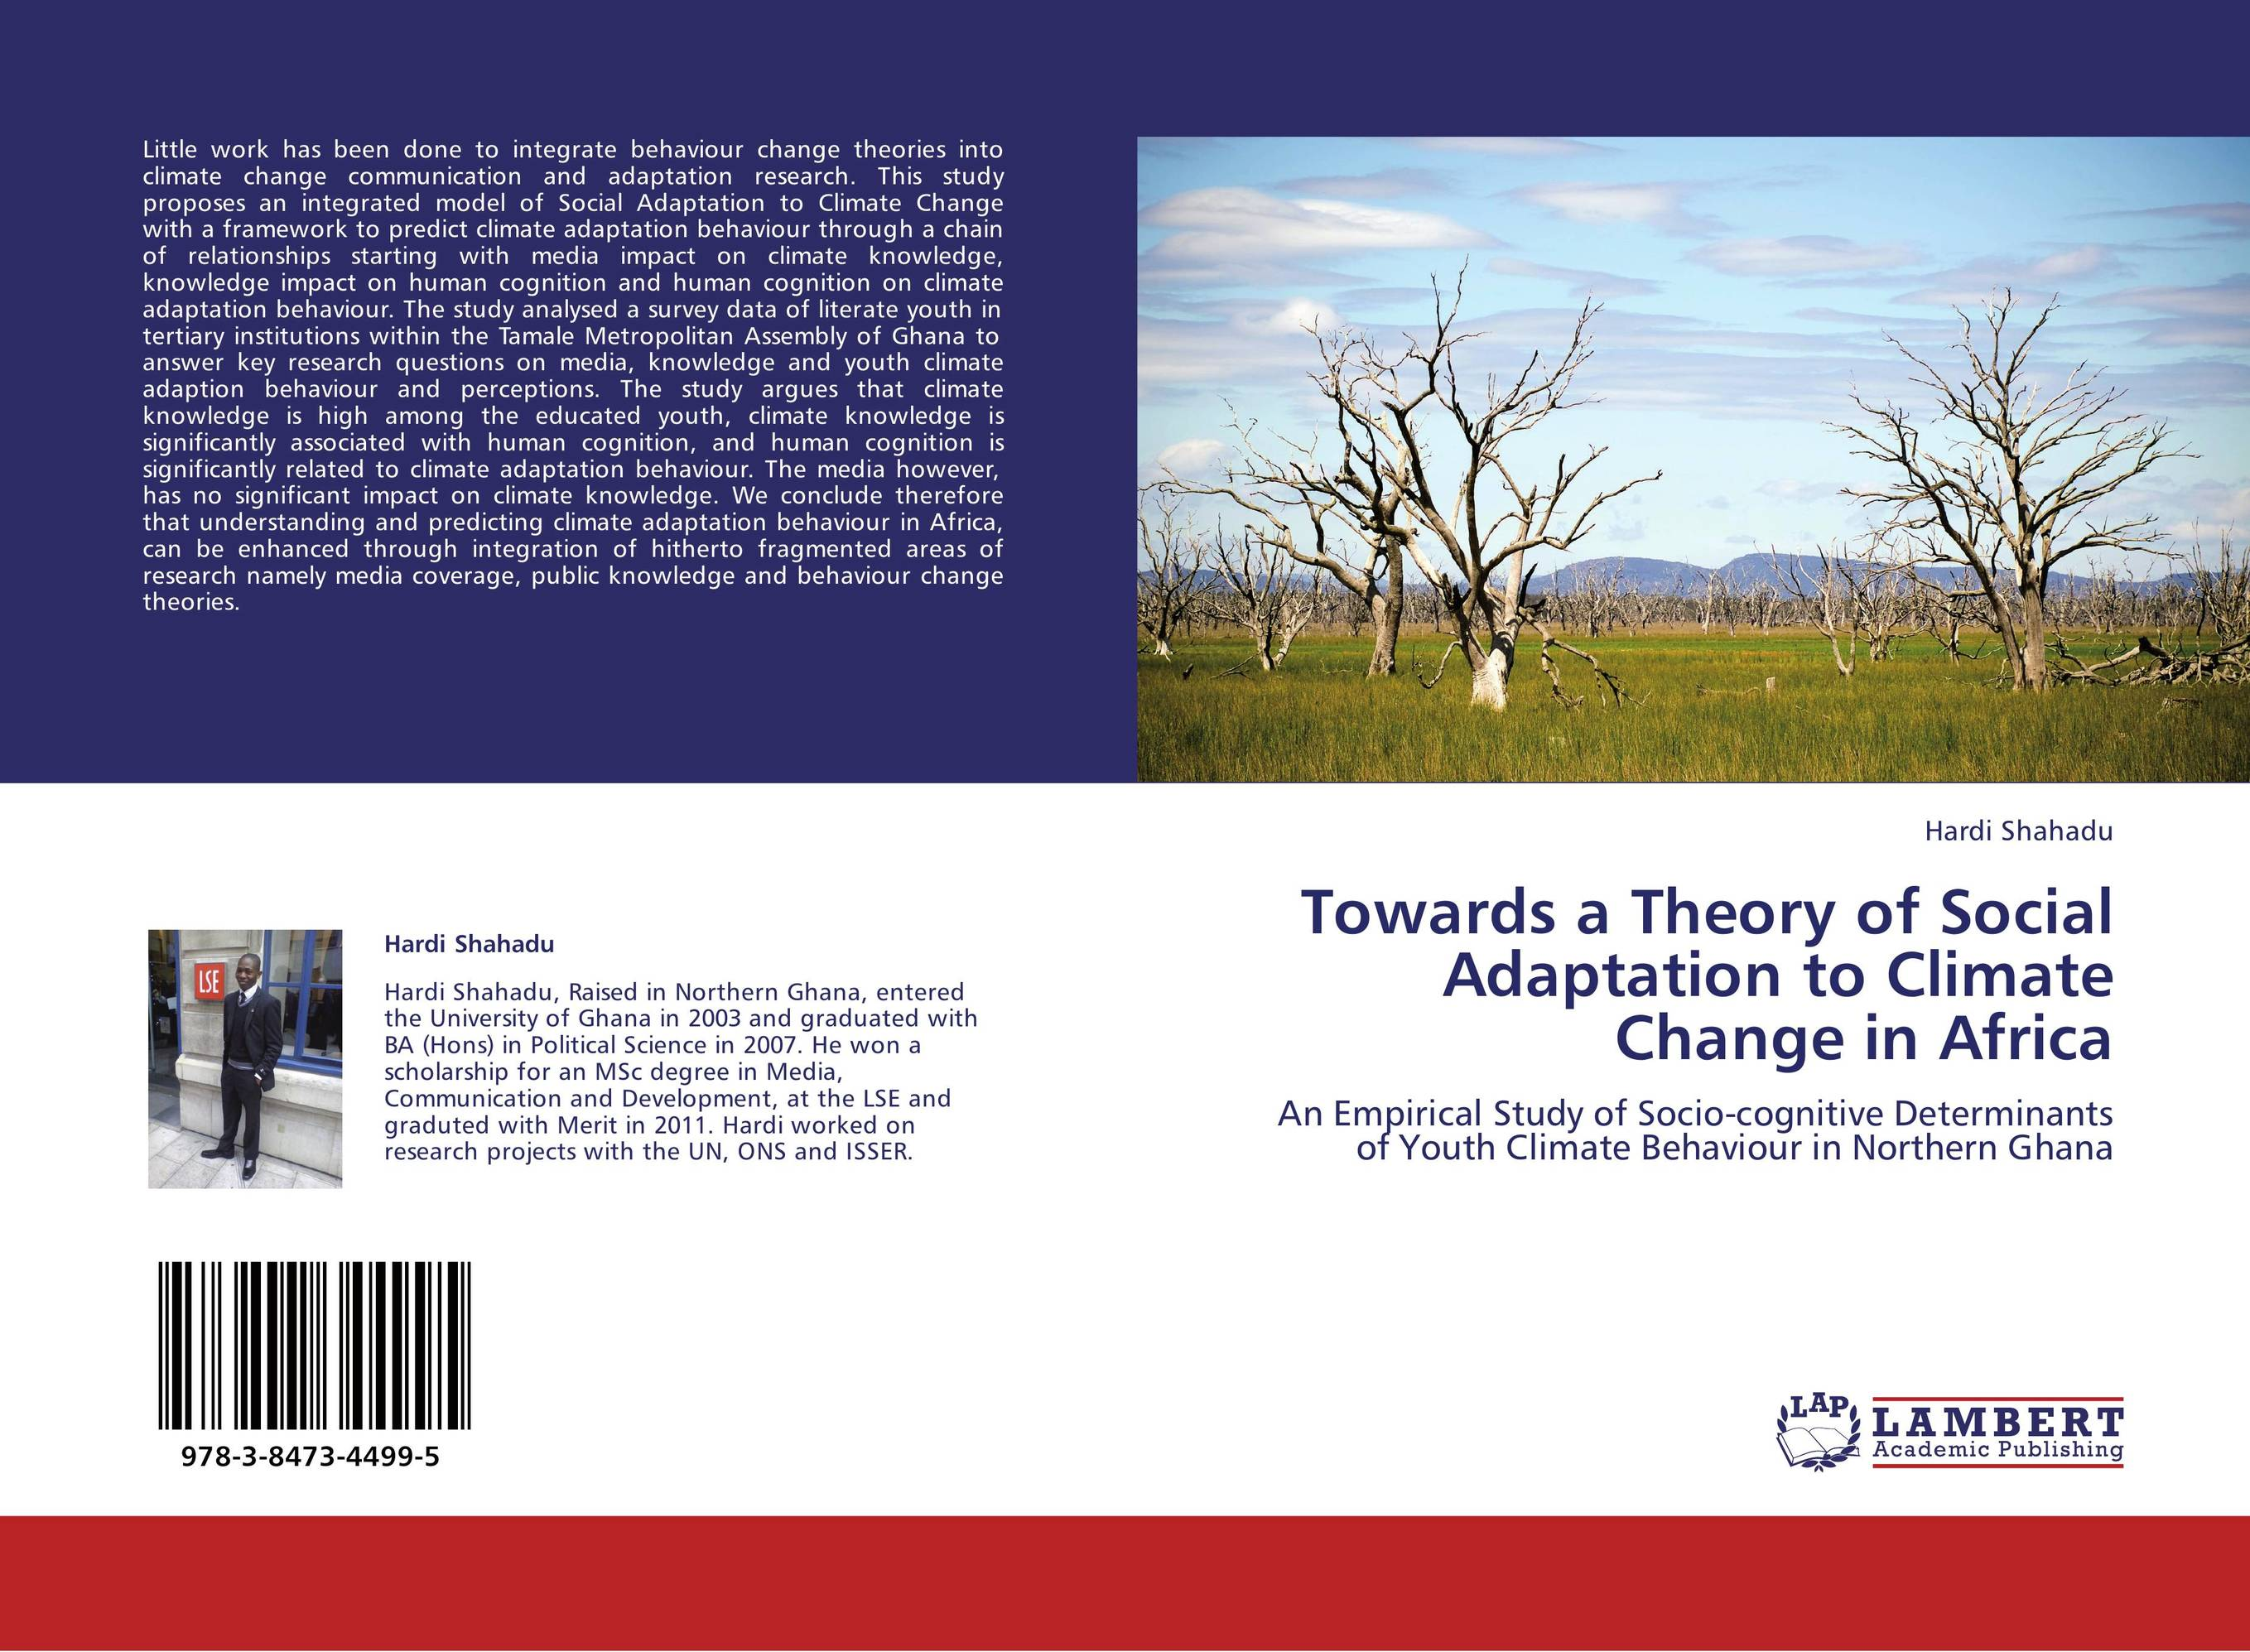 a study of climate change Harvard acts on climate change by researching across disciplines, educating future climate innovators, and modeling a pathway to a more sustainable community.